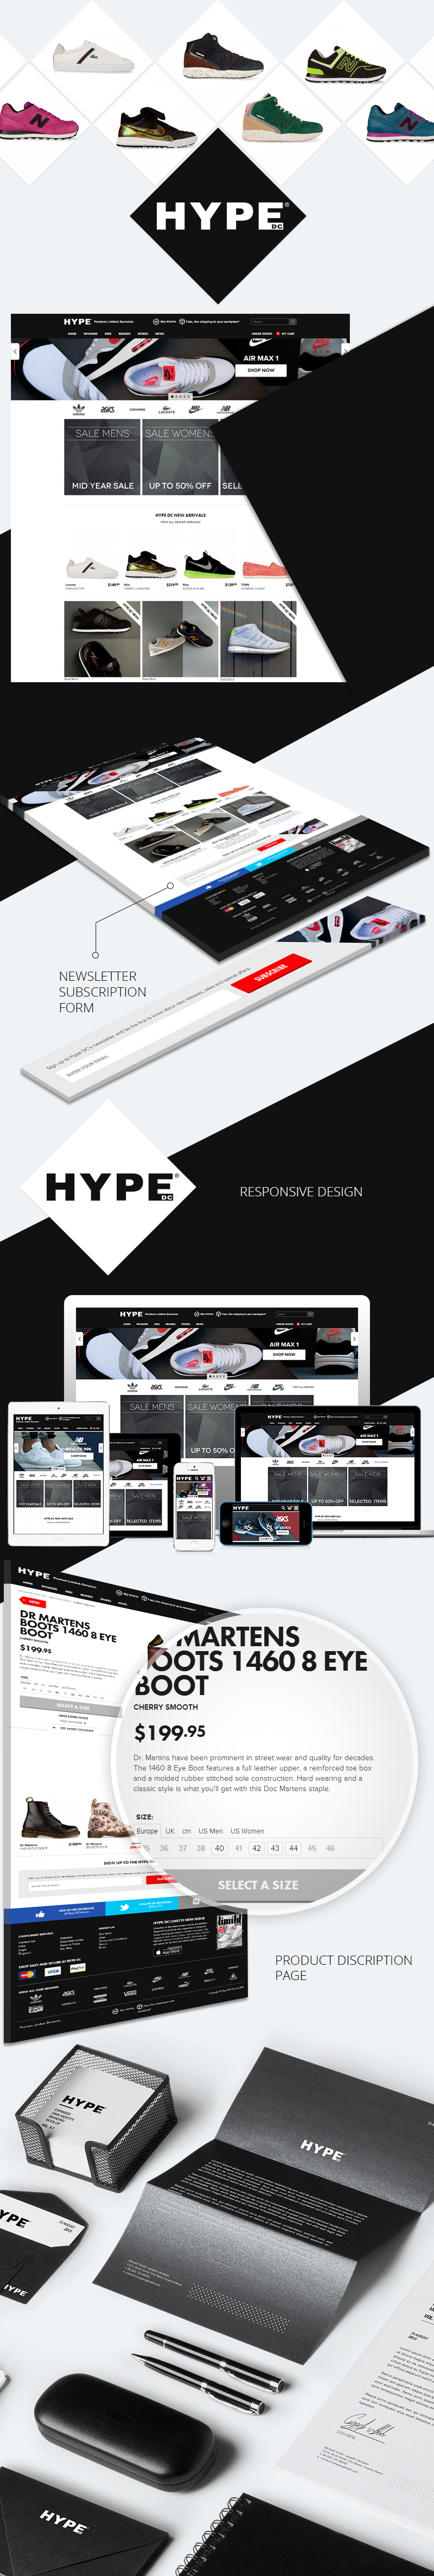 Hype Online Store